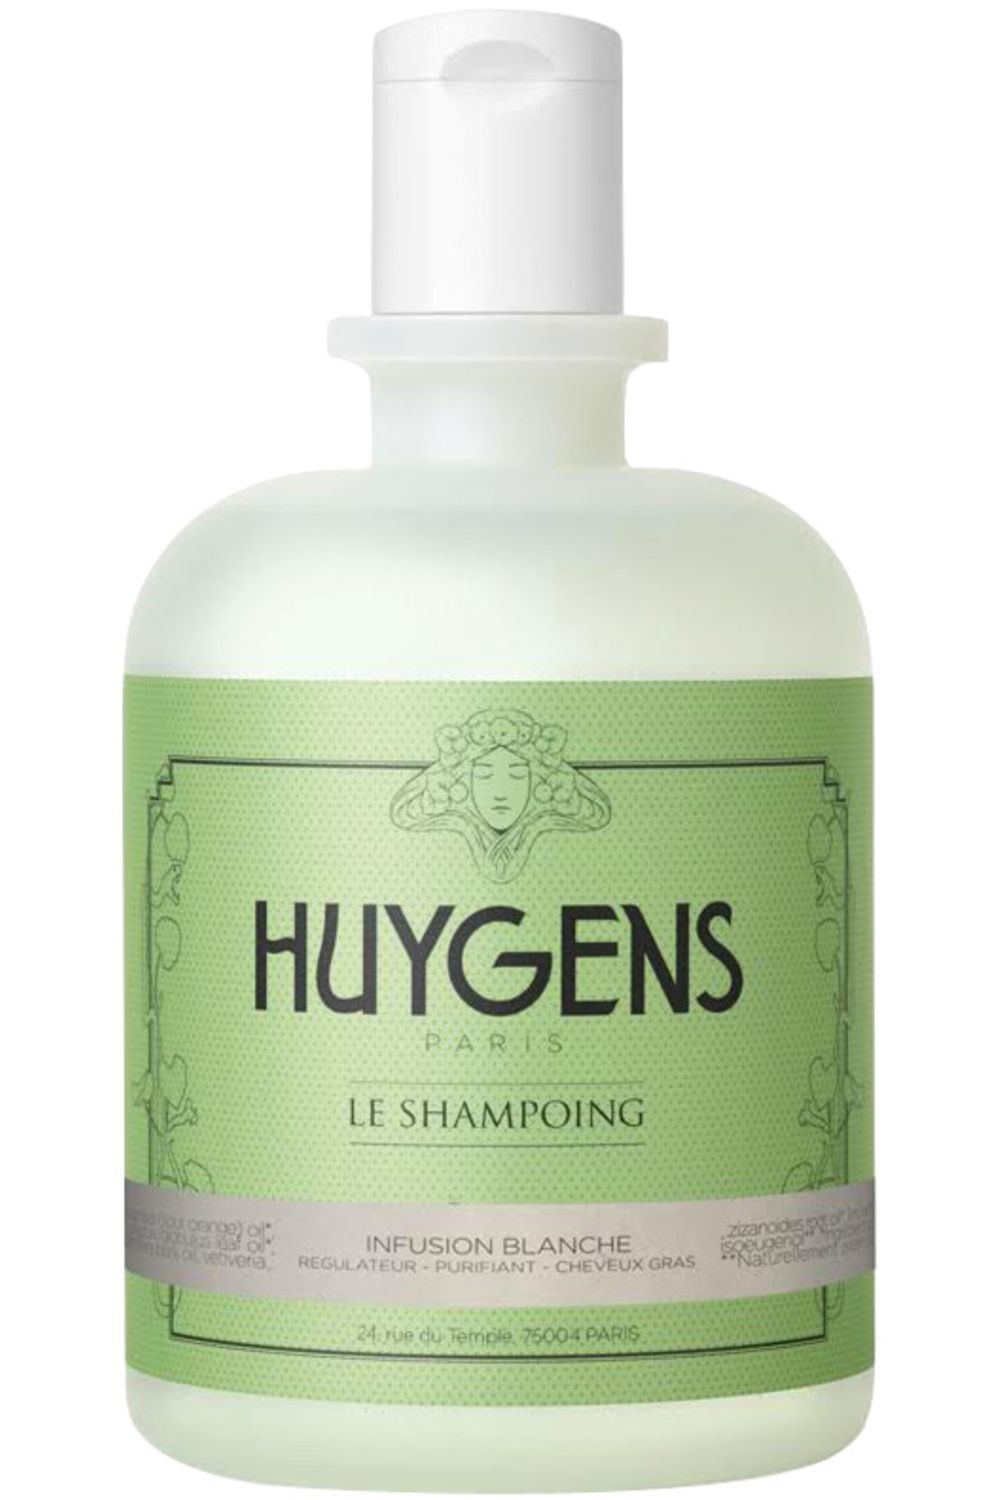 Blissim : Huygens - Shampoing Infusion Blanche Régulateur - Shampoing Infusion Blanche Régulateur